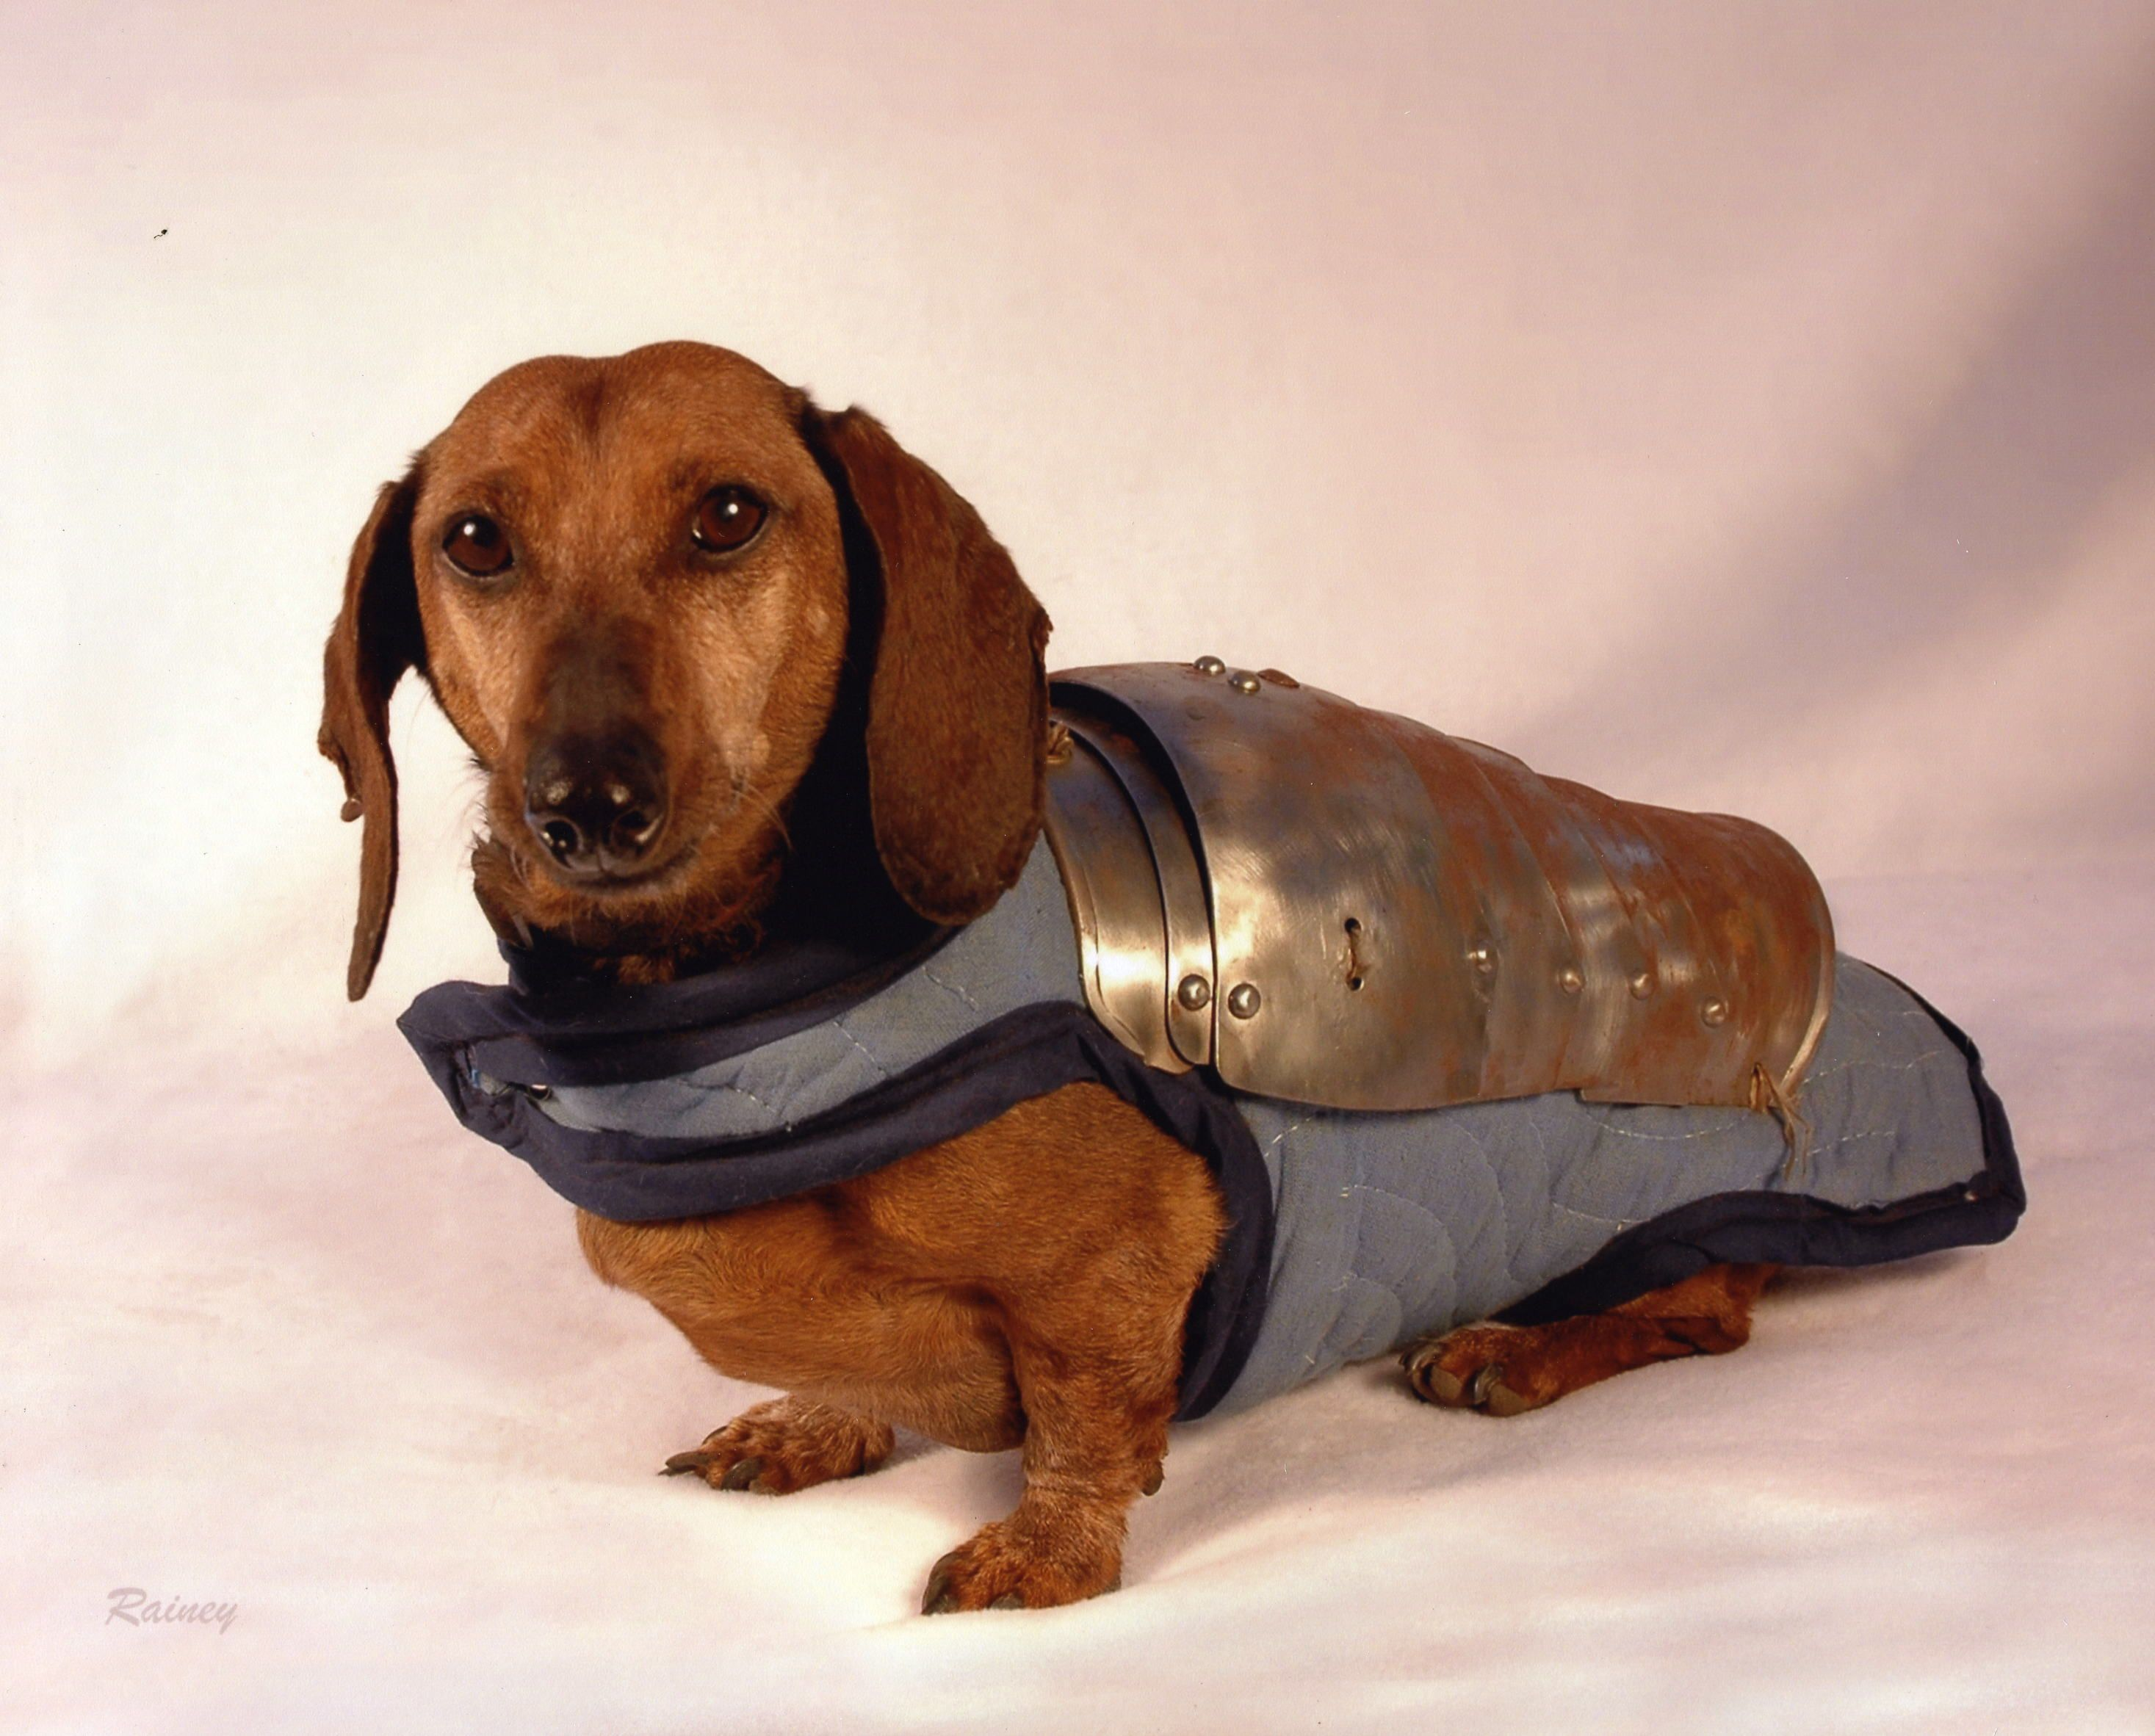 Armored Hot Dog Dachshund Animals Dogs